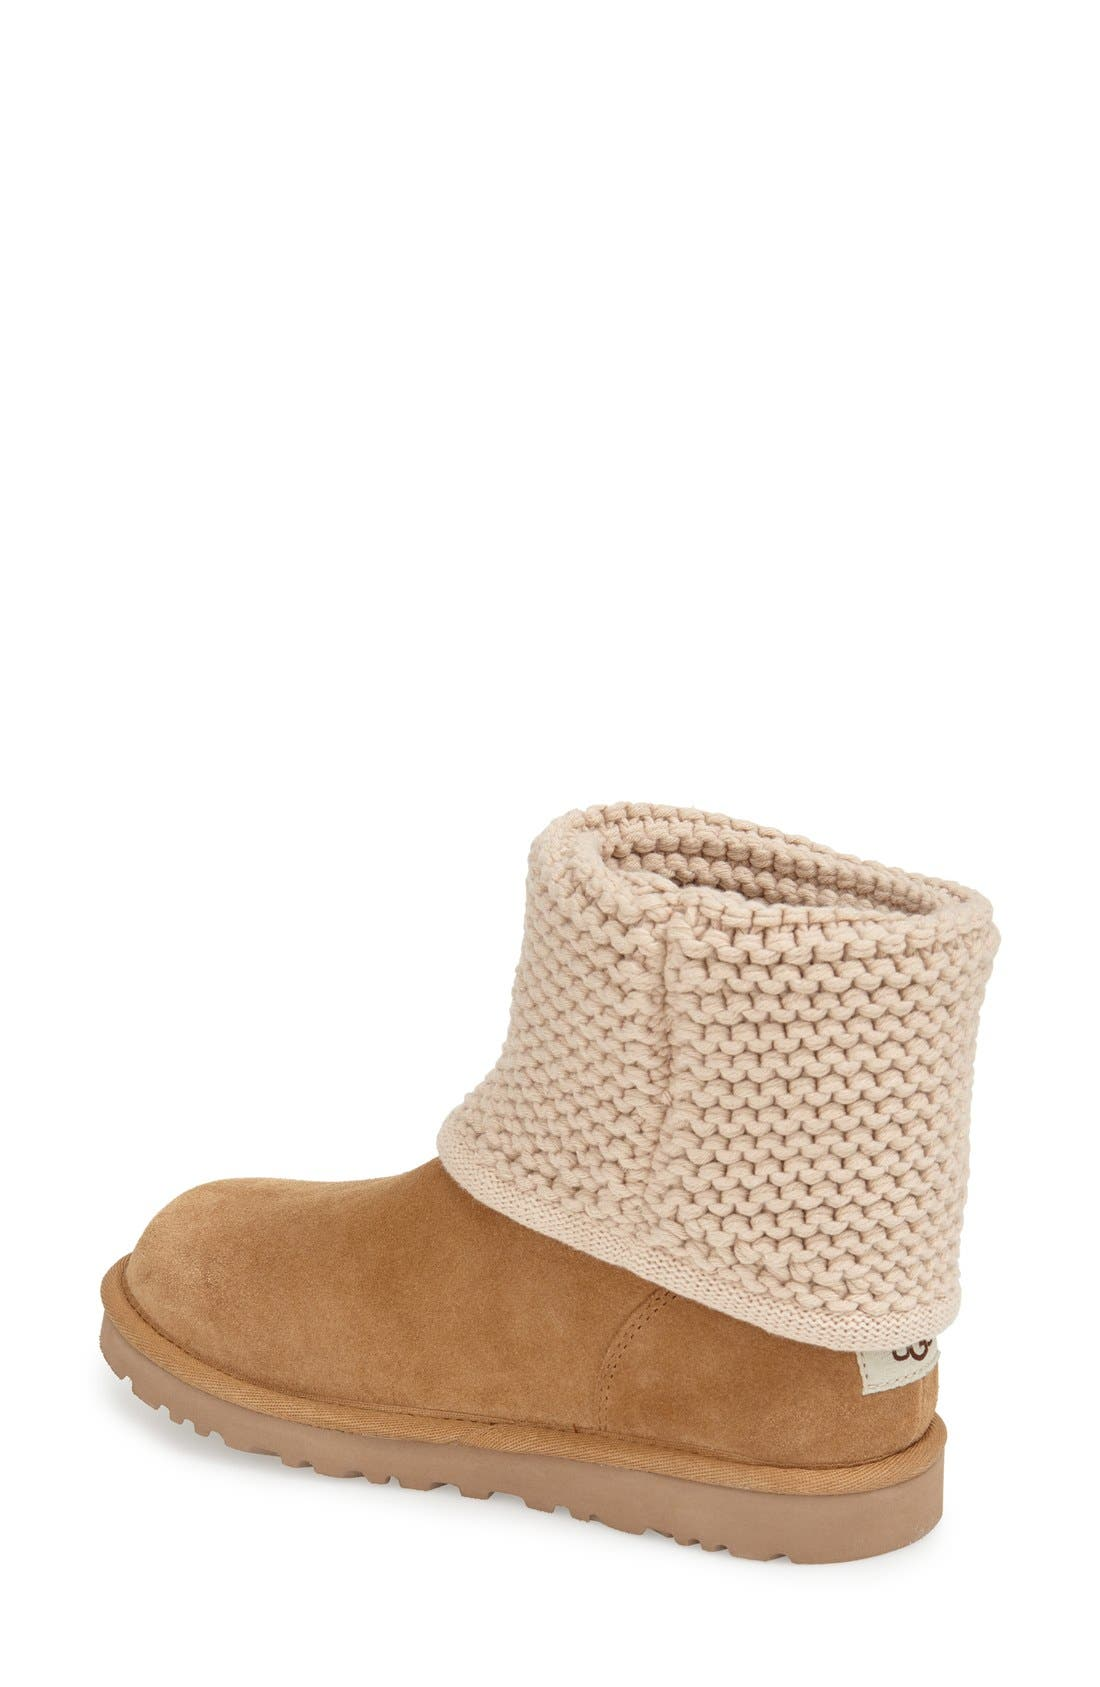 Alternate Image 2  - UGG® Shaina Knit Cuff Bootie (Women)